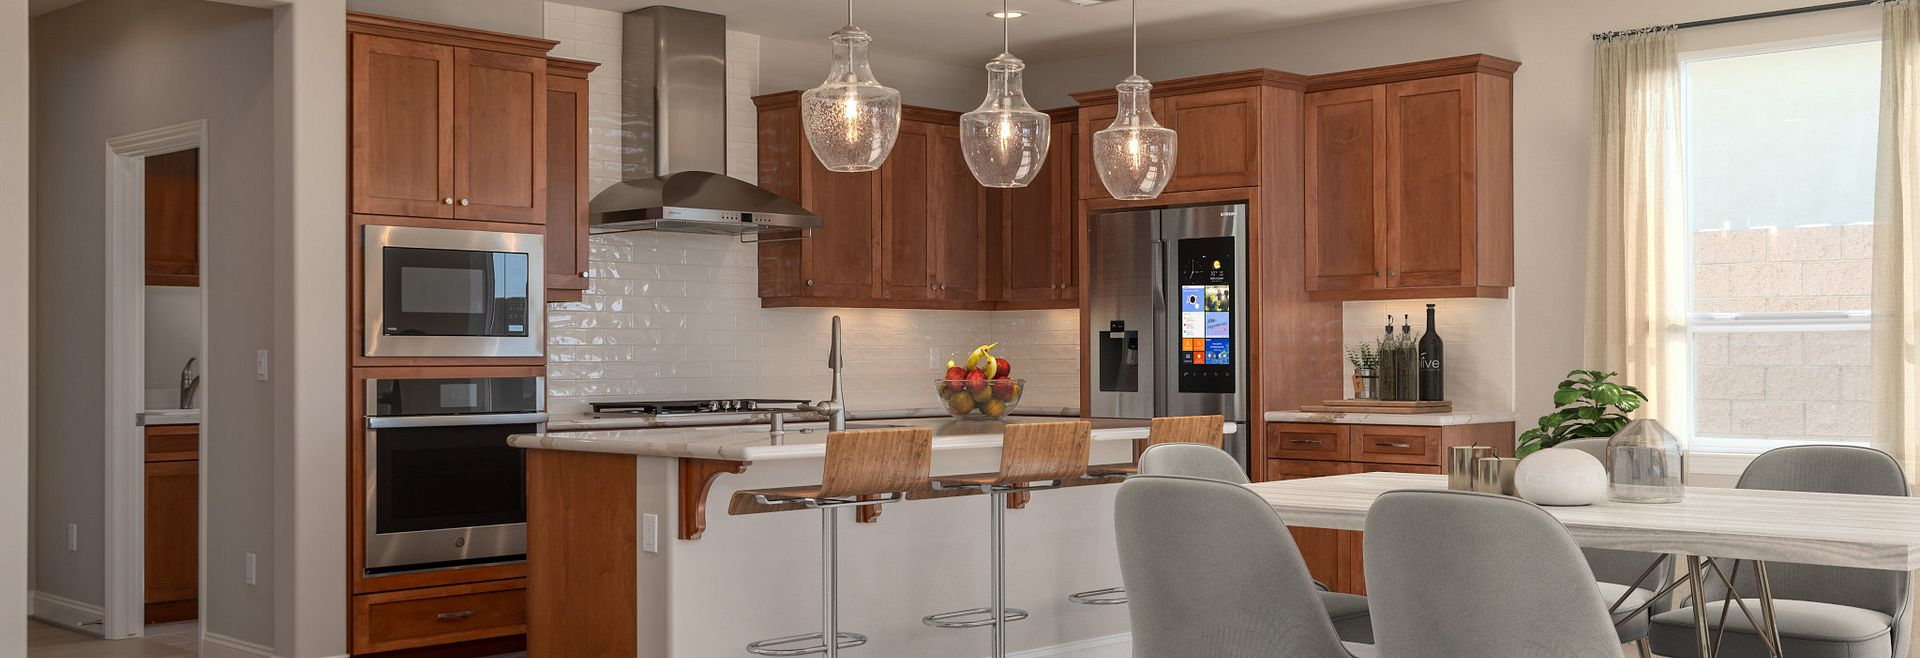 Trilogy Monarch Dunes Solvang Virtually Staged Dining